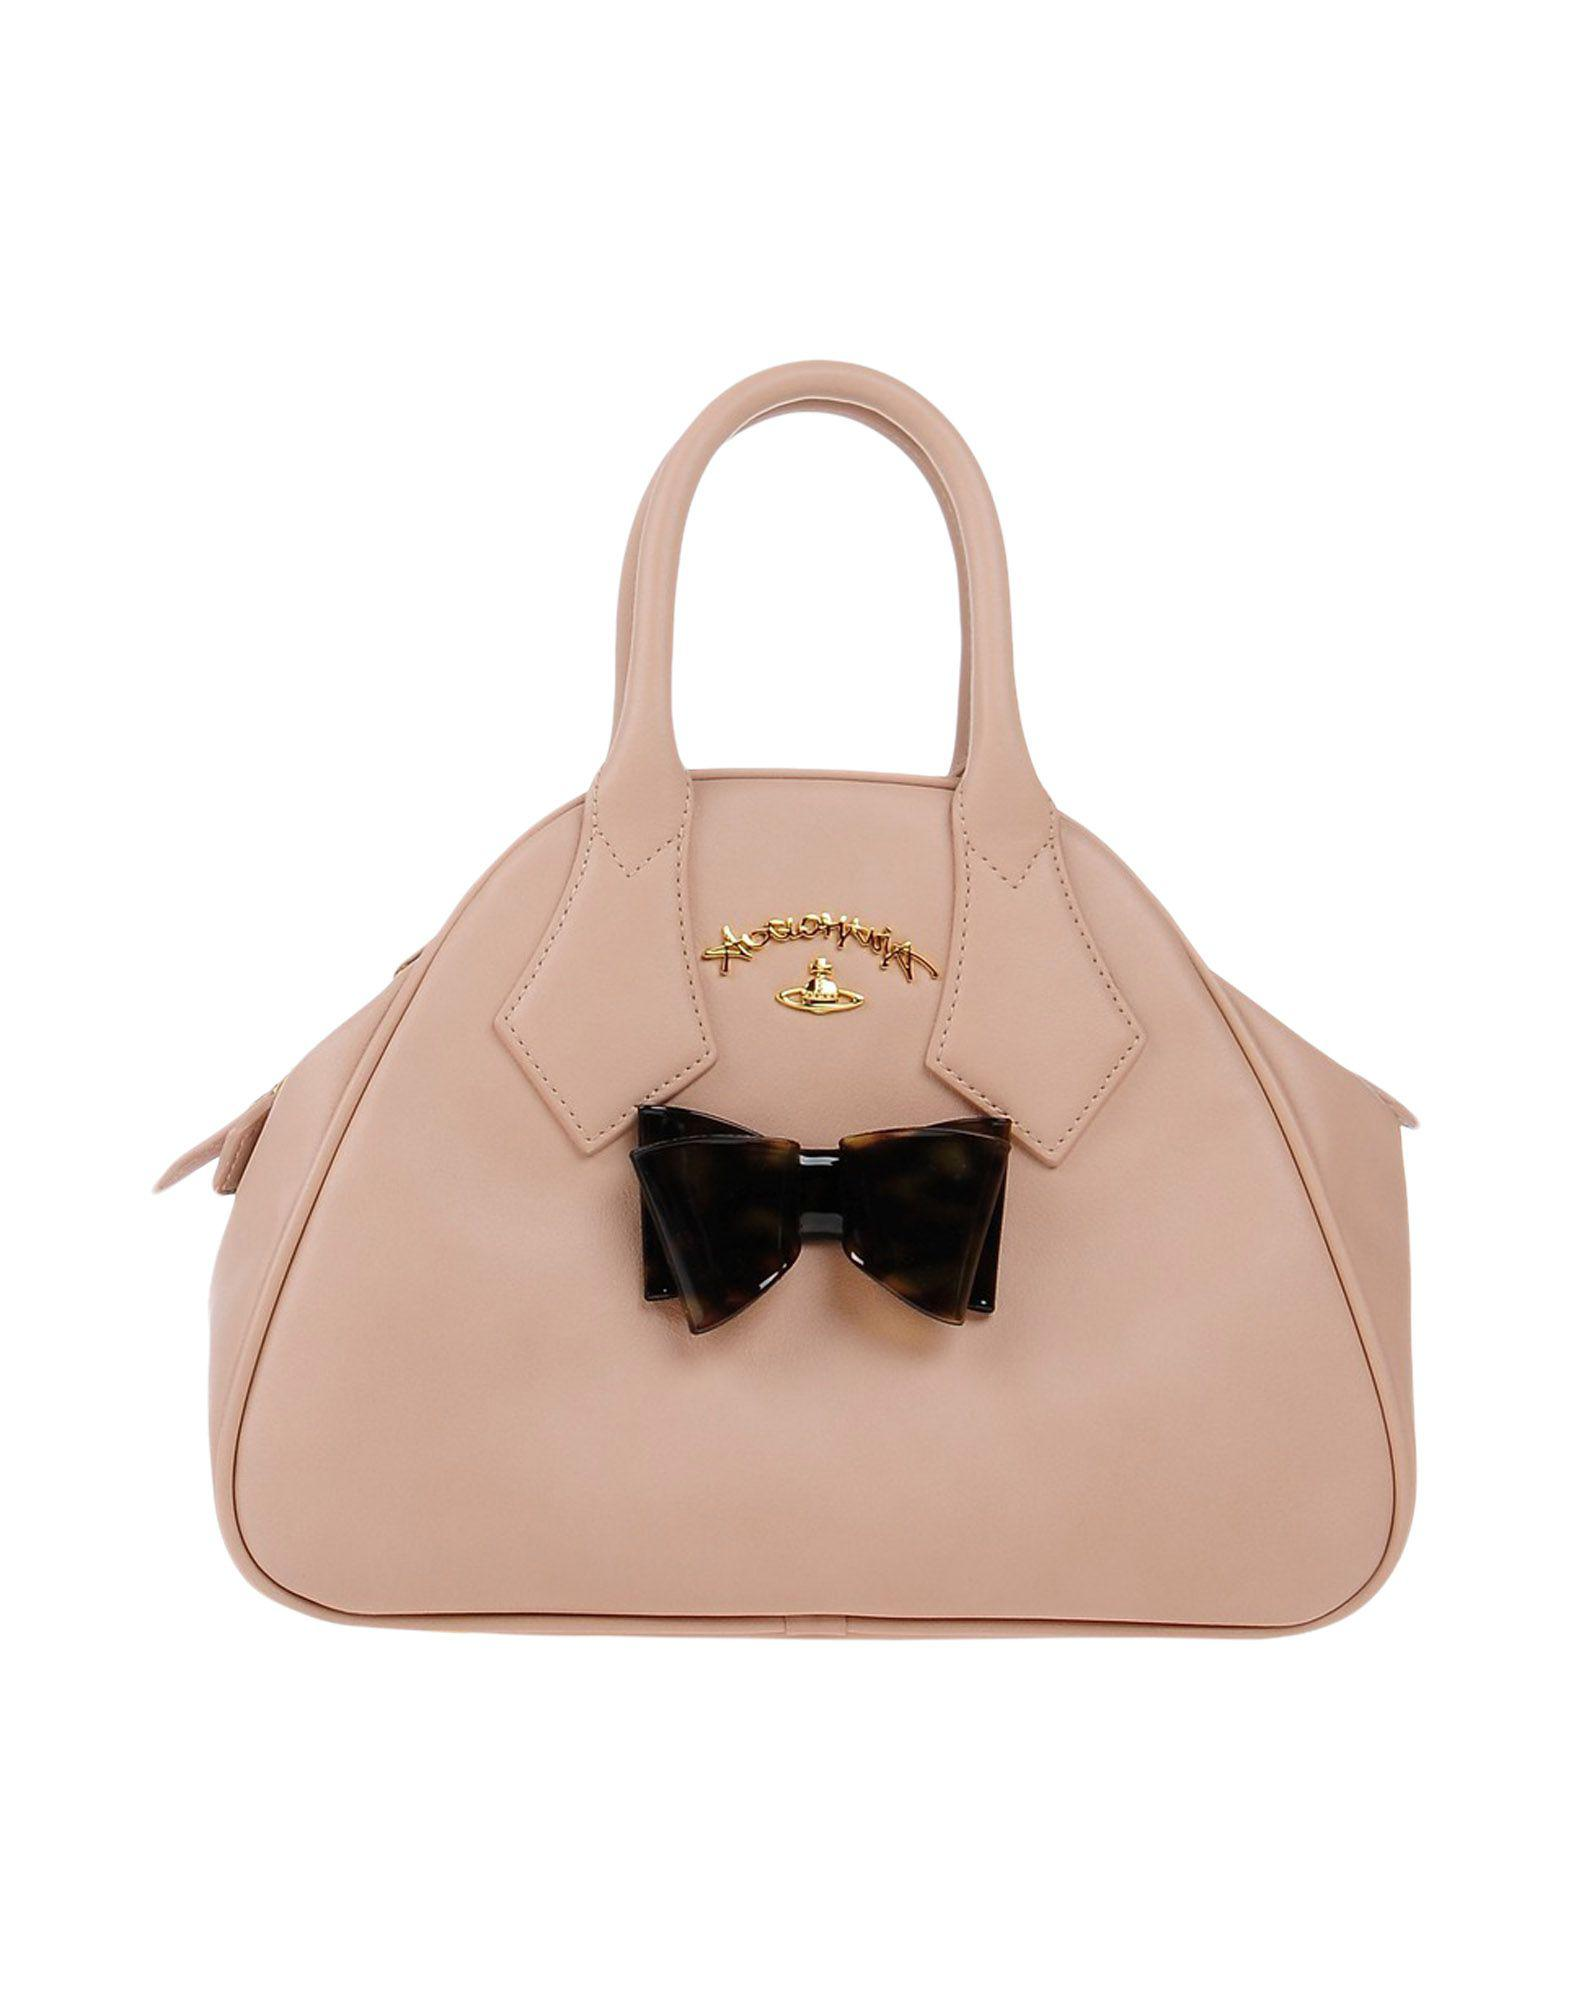 b0dc40adcd Vivienne Westwood Anglomania Handbags in Pink - Lyst